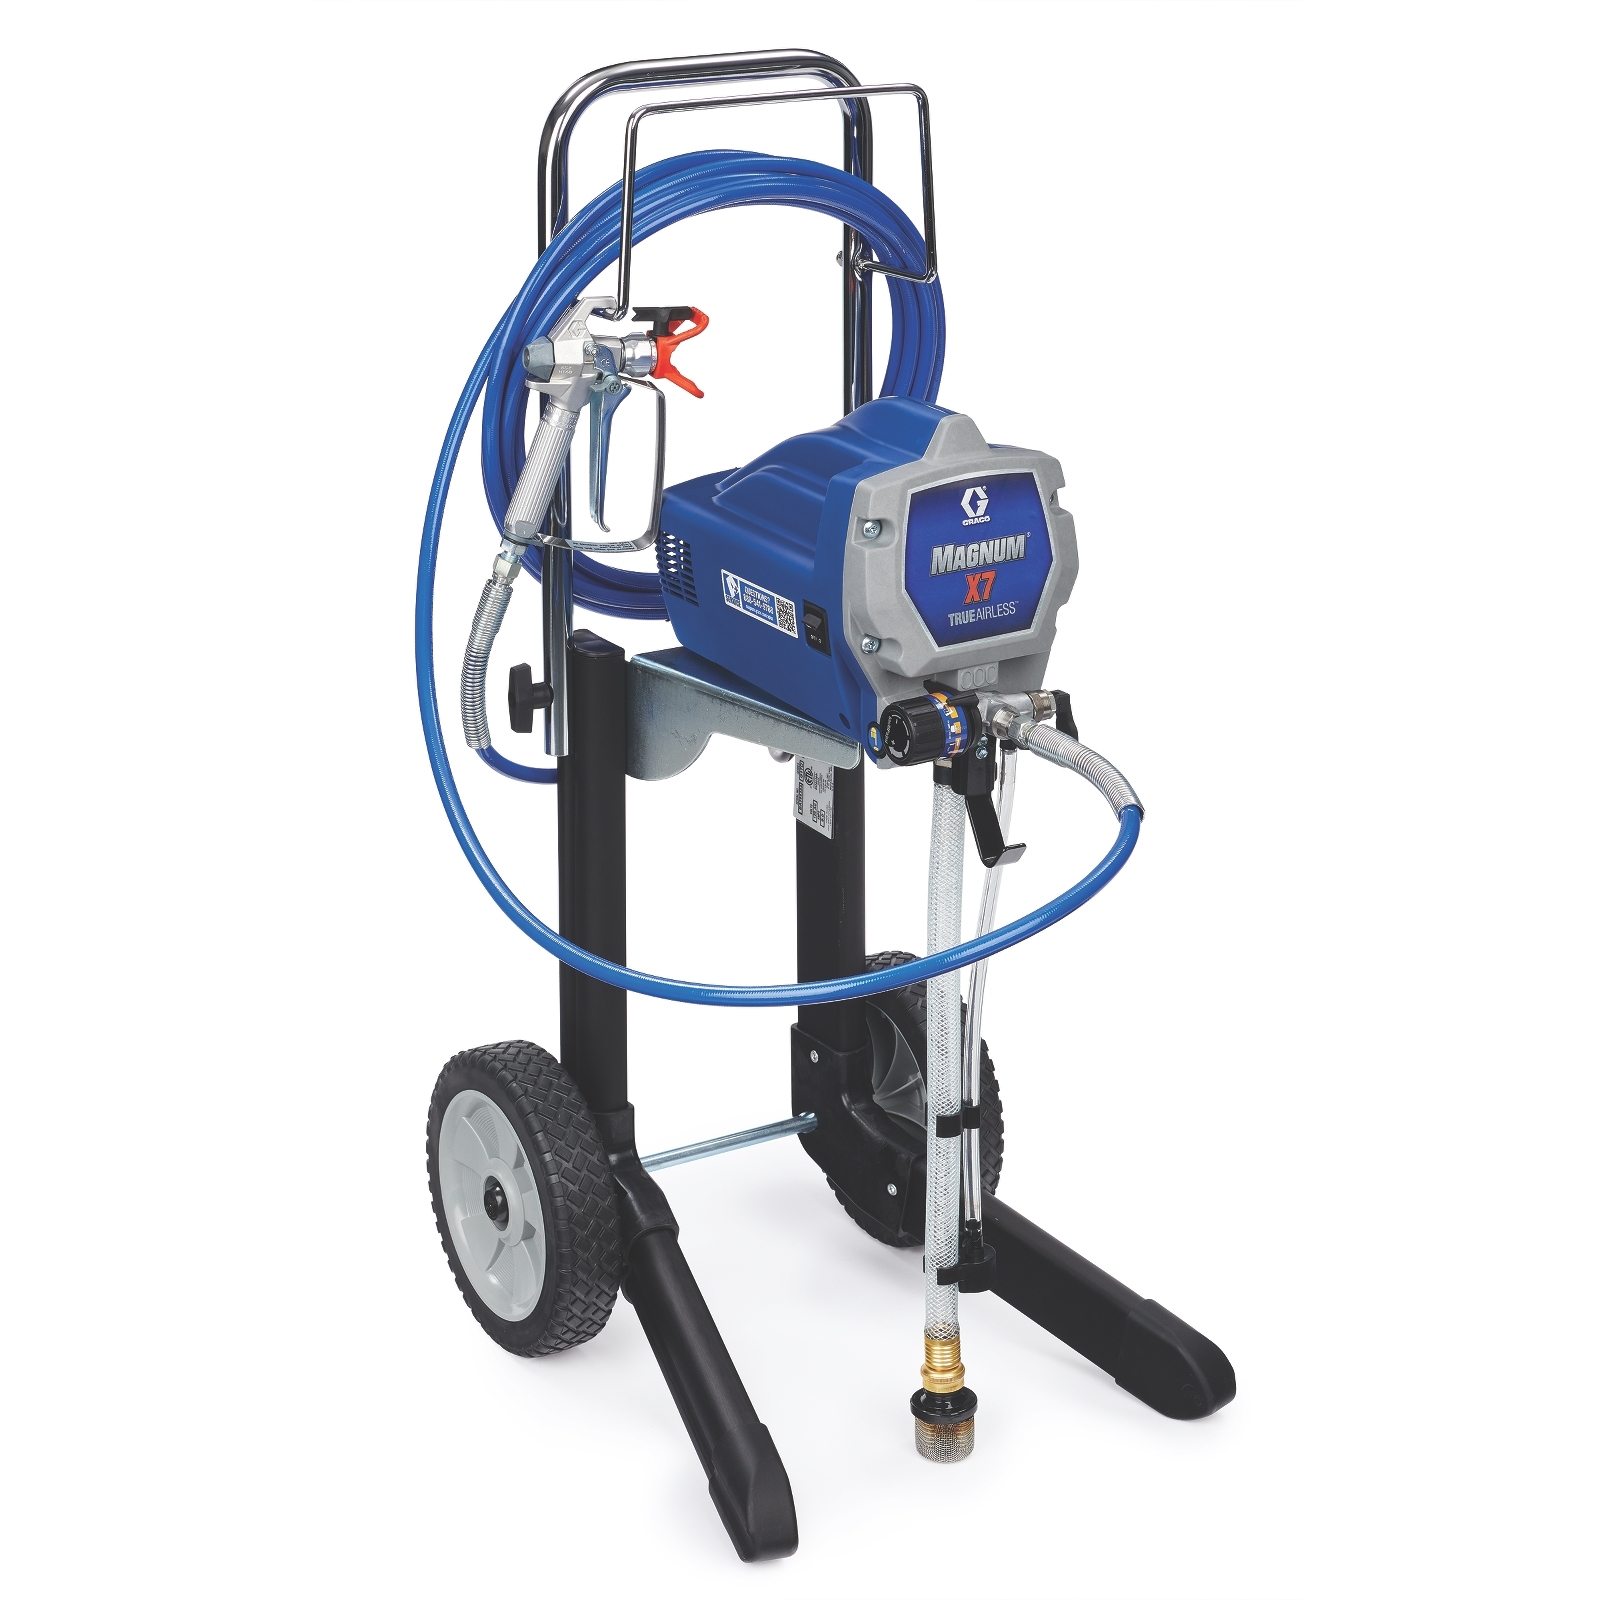 Magnum X7 Electric Trueairless Sprayer Graco Speed Control Circuit For An Power Tool Google Patents